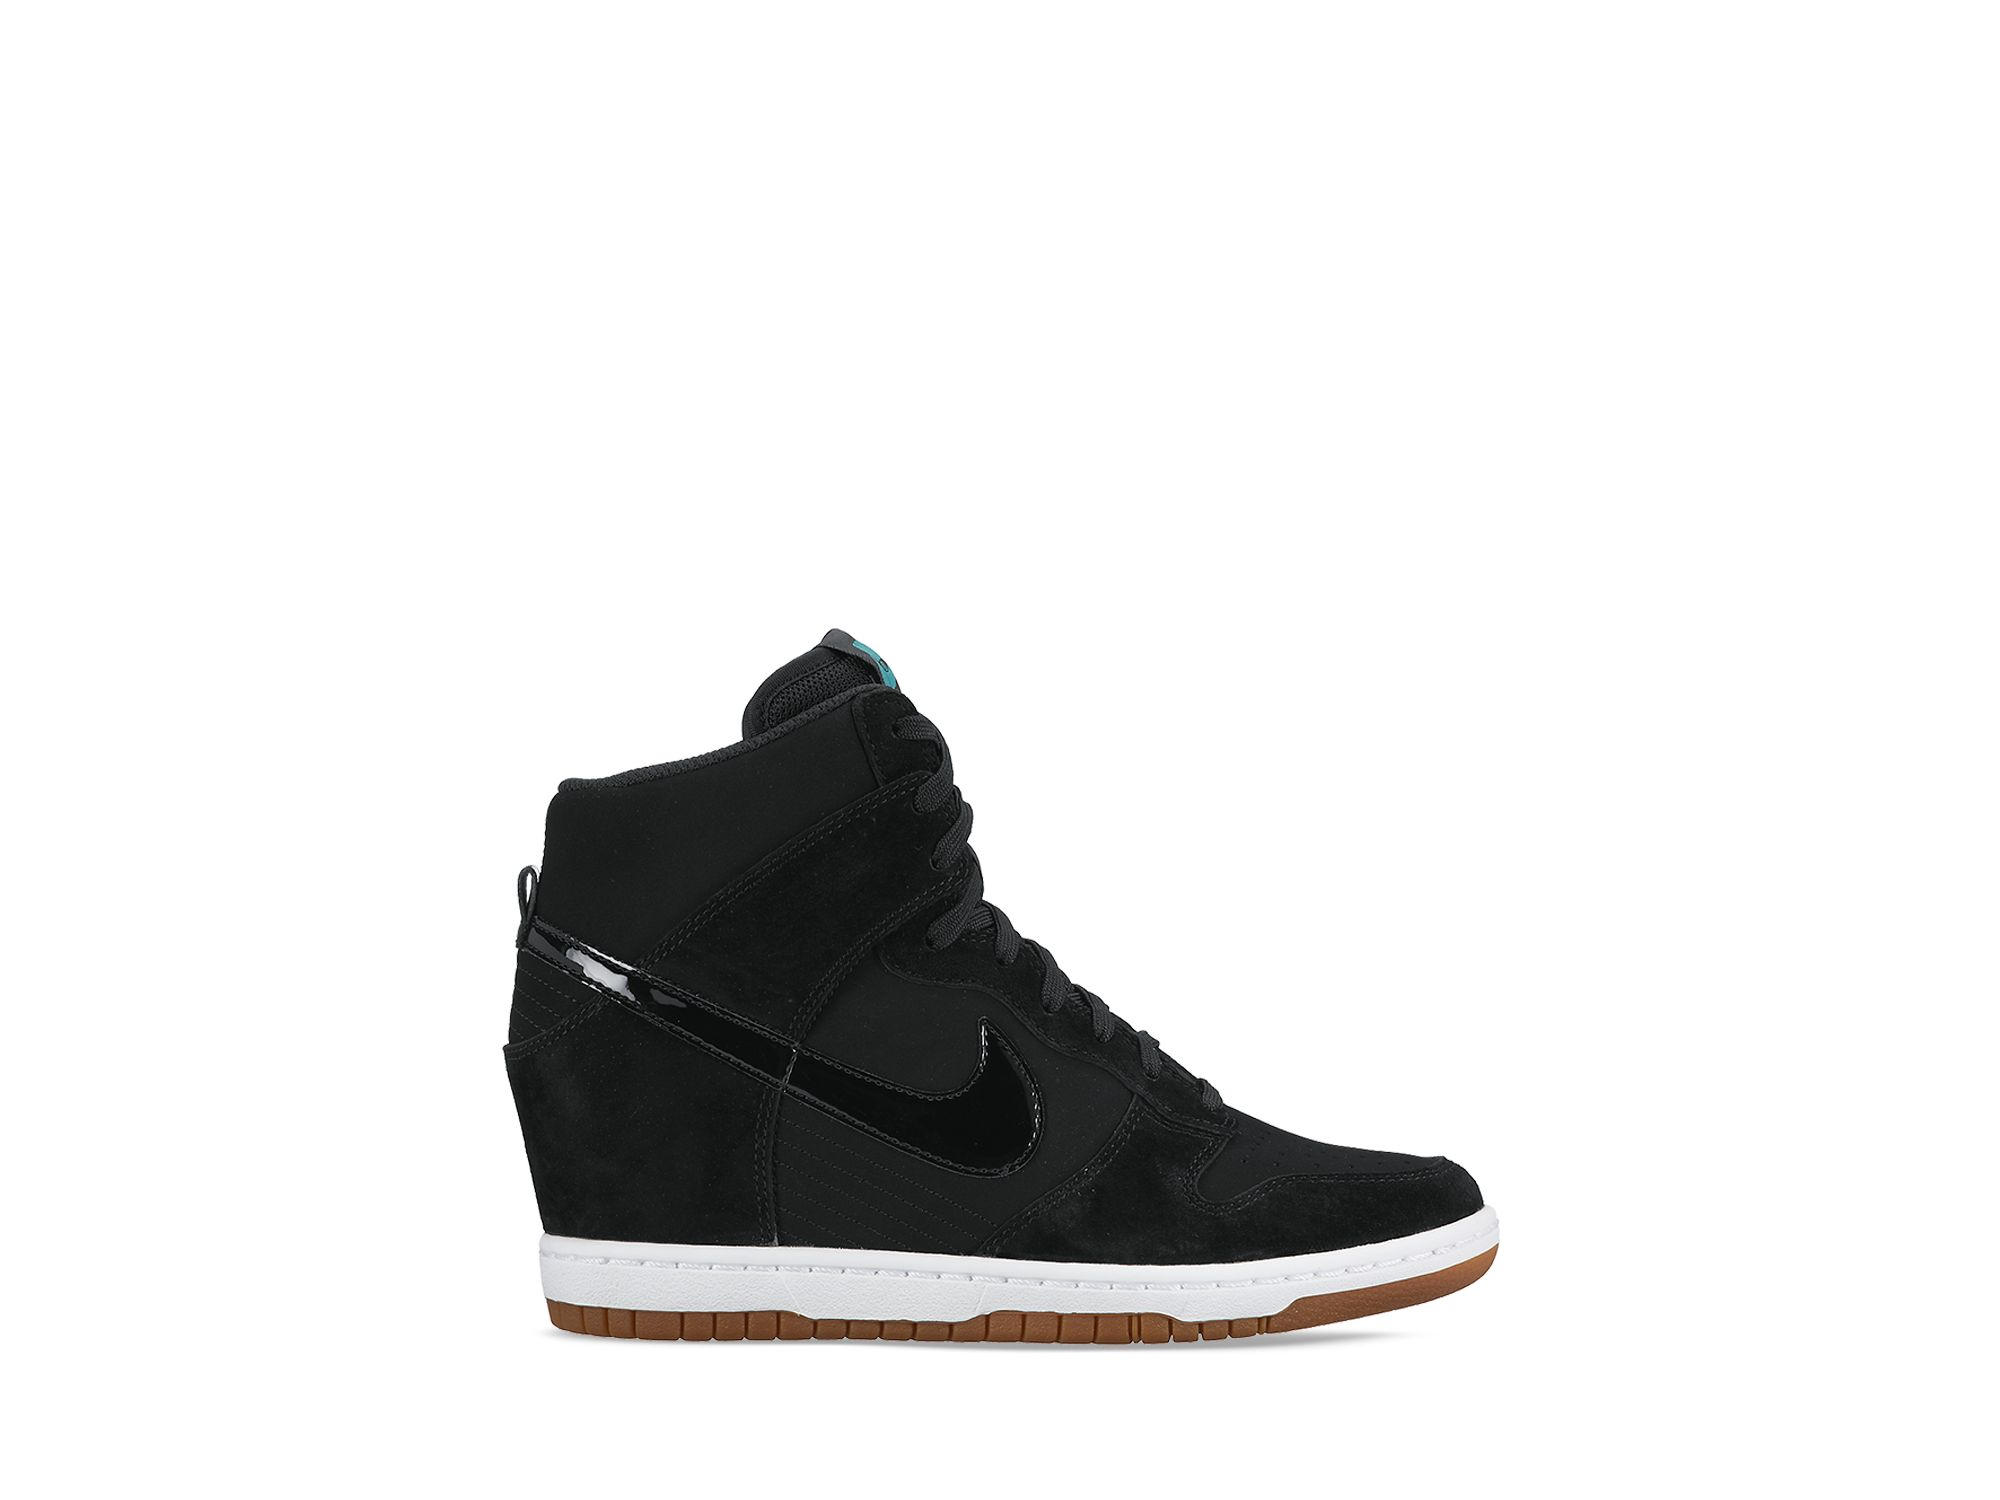 best service 9c51b 7db0a ... high wedge trainers womens vintage grey white 3x0gyxq1 72732 6313c  canada gallery. previously sold at bloomingdales womens nike dunk sky hi  49970 20676 ...